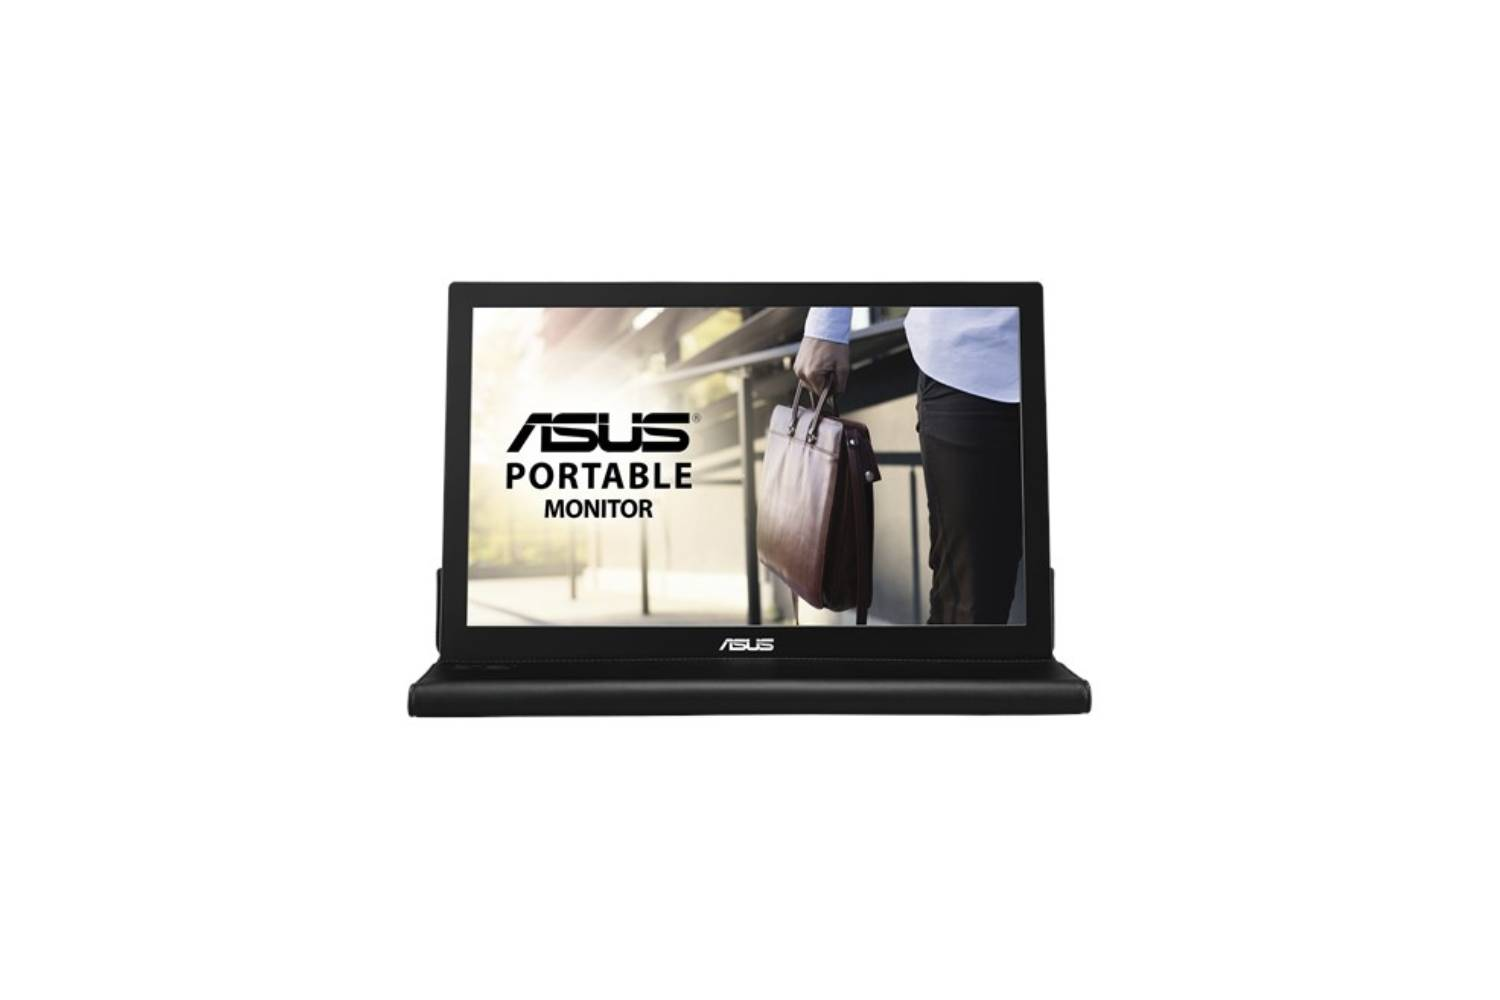 ASUS MB168B (15.6) Inch USB-powered, Ultra-slim, Auto-rotatable Portable monitor